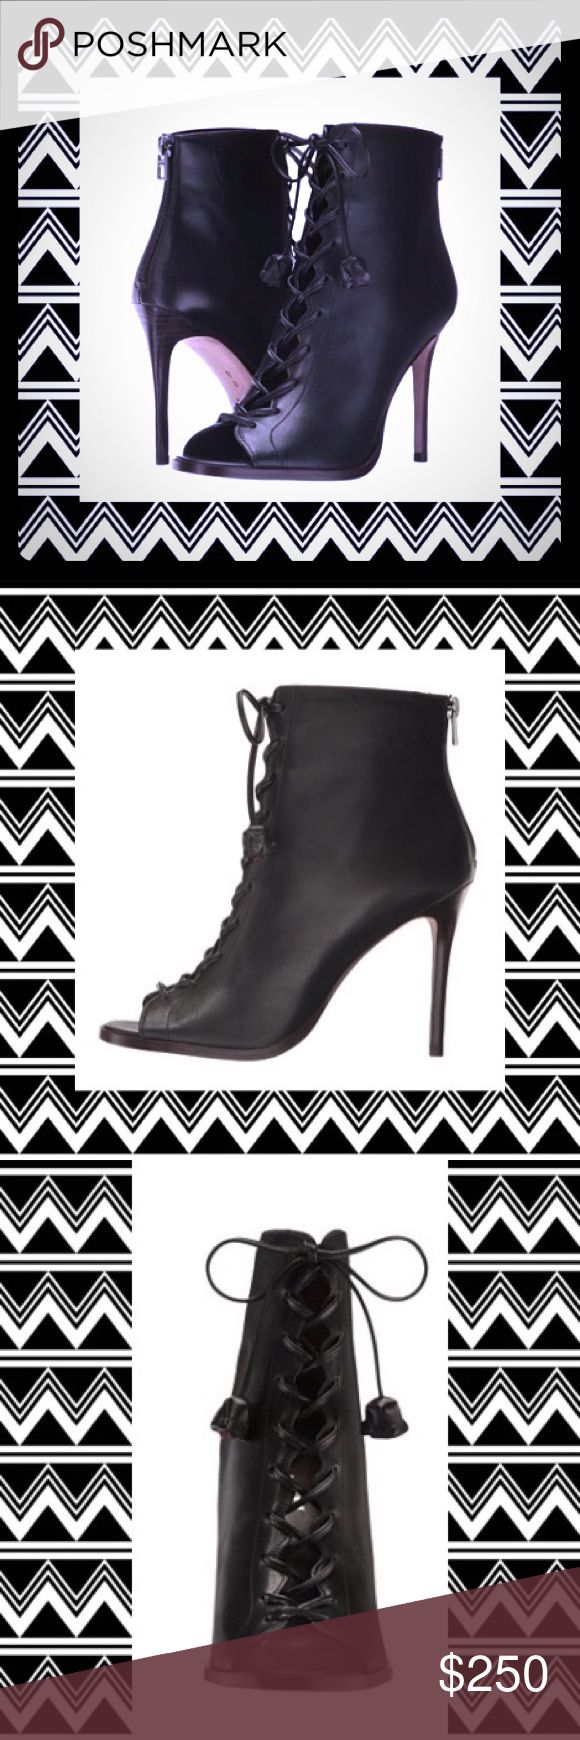 Coach, Lena ❤️ Black Stiletto Ankle Boots Watch heads turn in these sky high black leather stiletto, peep-toe ankle boots from Coach. The Lena is as sexy as they are sophisticated. With their lace-up design that ties at the top (combat boot style), playful peep-toe, and comfy leather lined padded inside, these boots are the whole package wrapped in a black stiletto ankle boot. Get them while you can bc at this price, they won't last long. NIB! Coach Shoes Ankle Boots & Booties